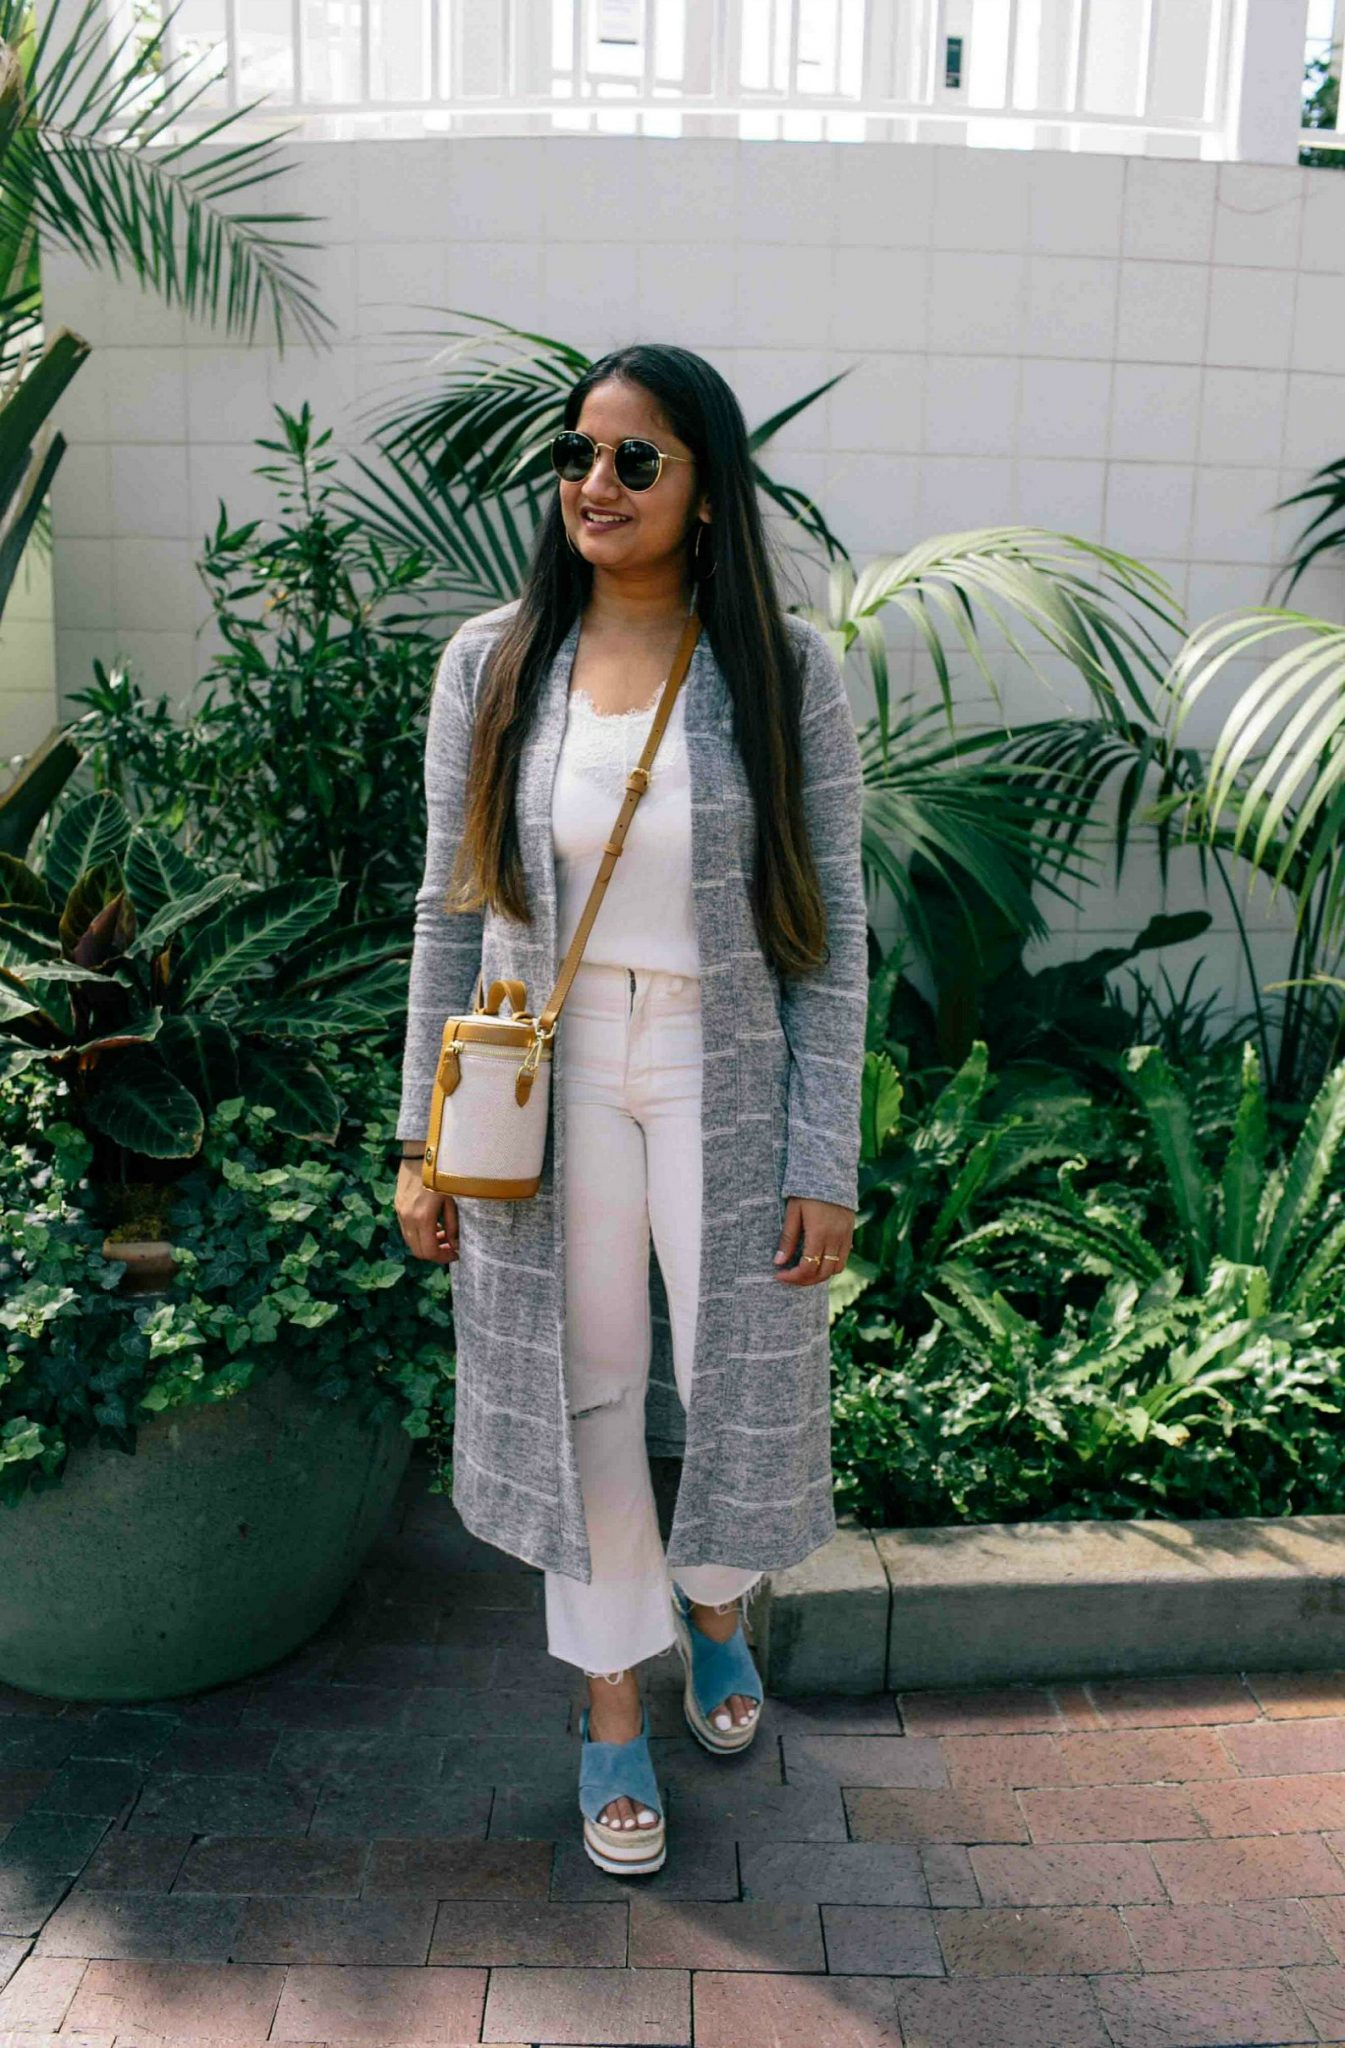 wearing grey striped long cardigan-Fresh All White Summer Outfit featured by popular Ohio modest fashion blogger, Dreaming Loud